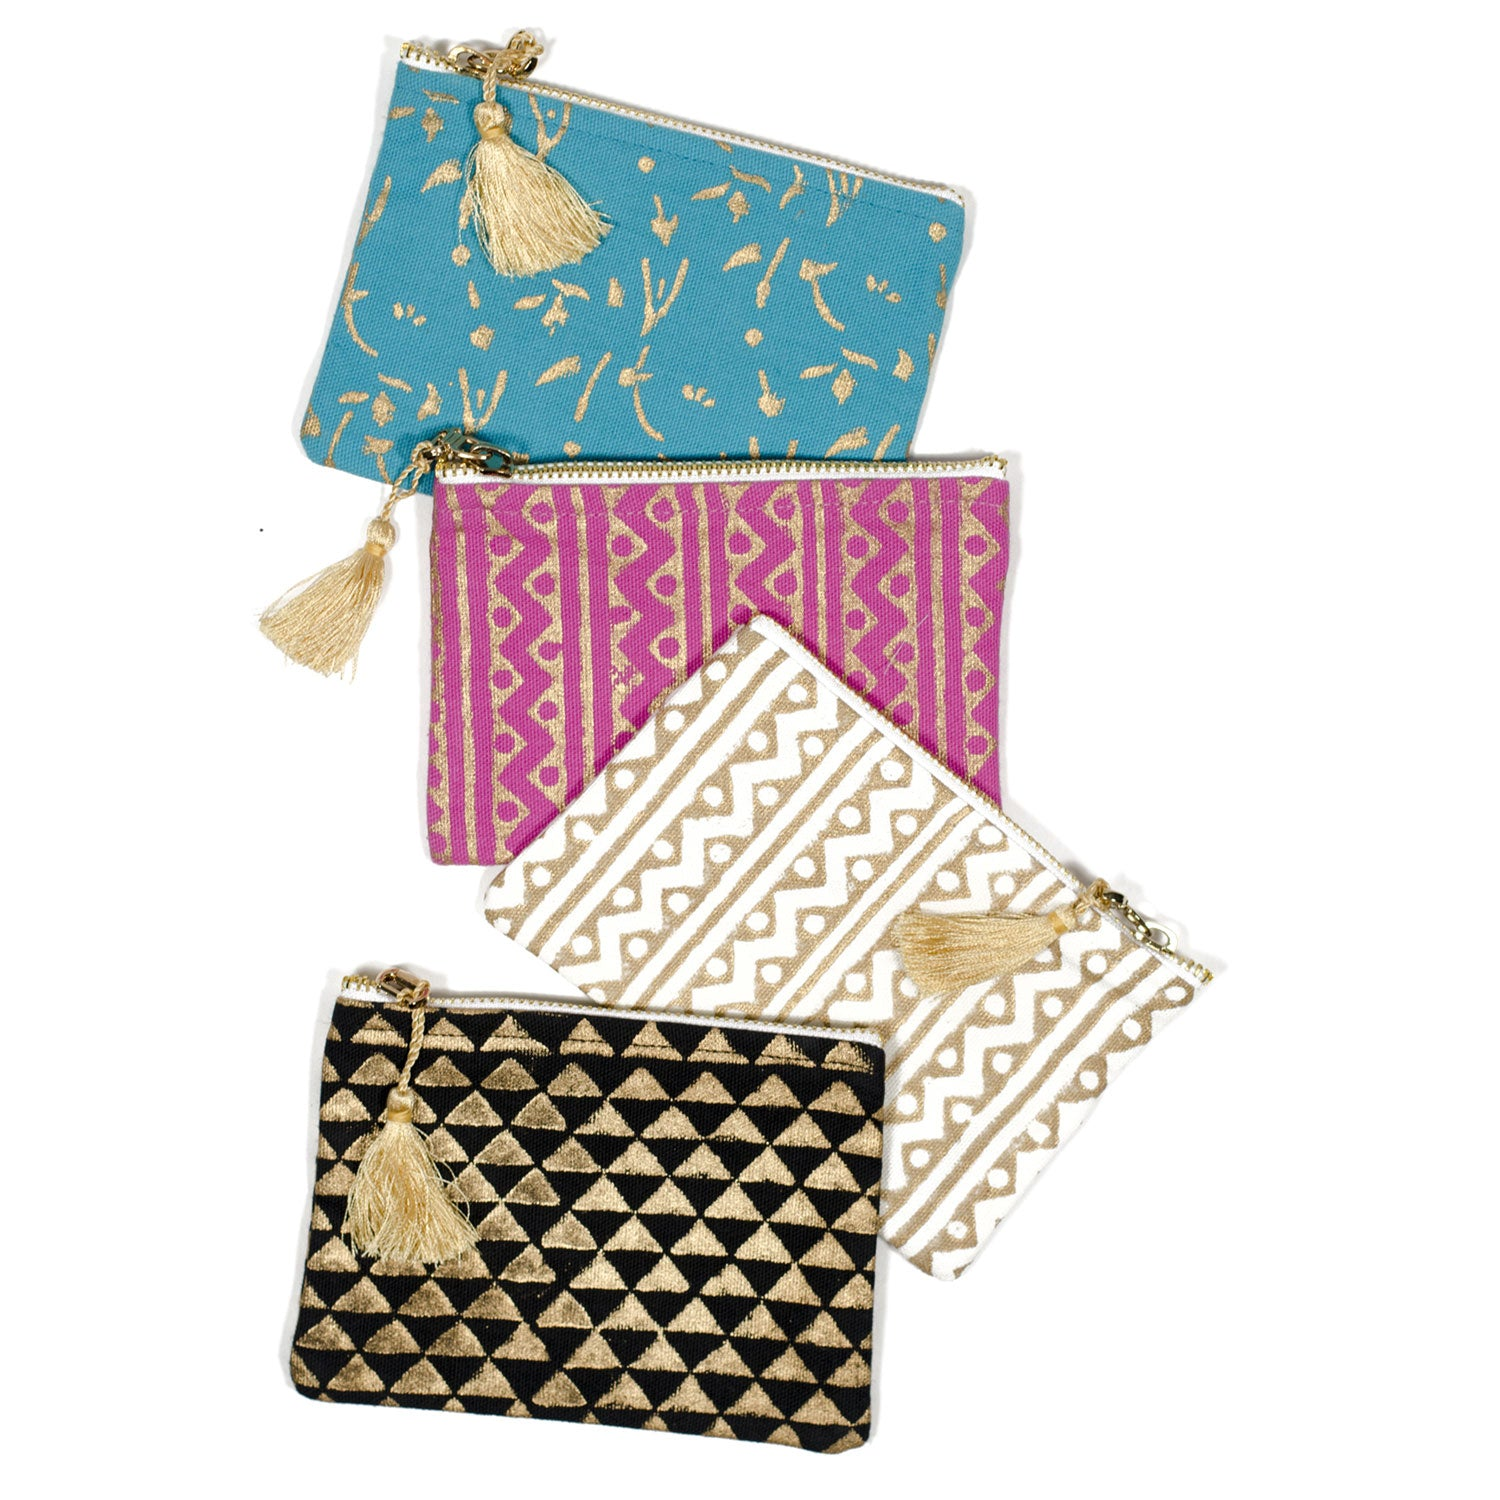 Metallic Block Print Clutch Purse- Set of 4 assorted